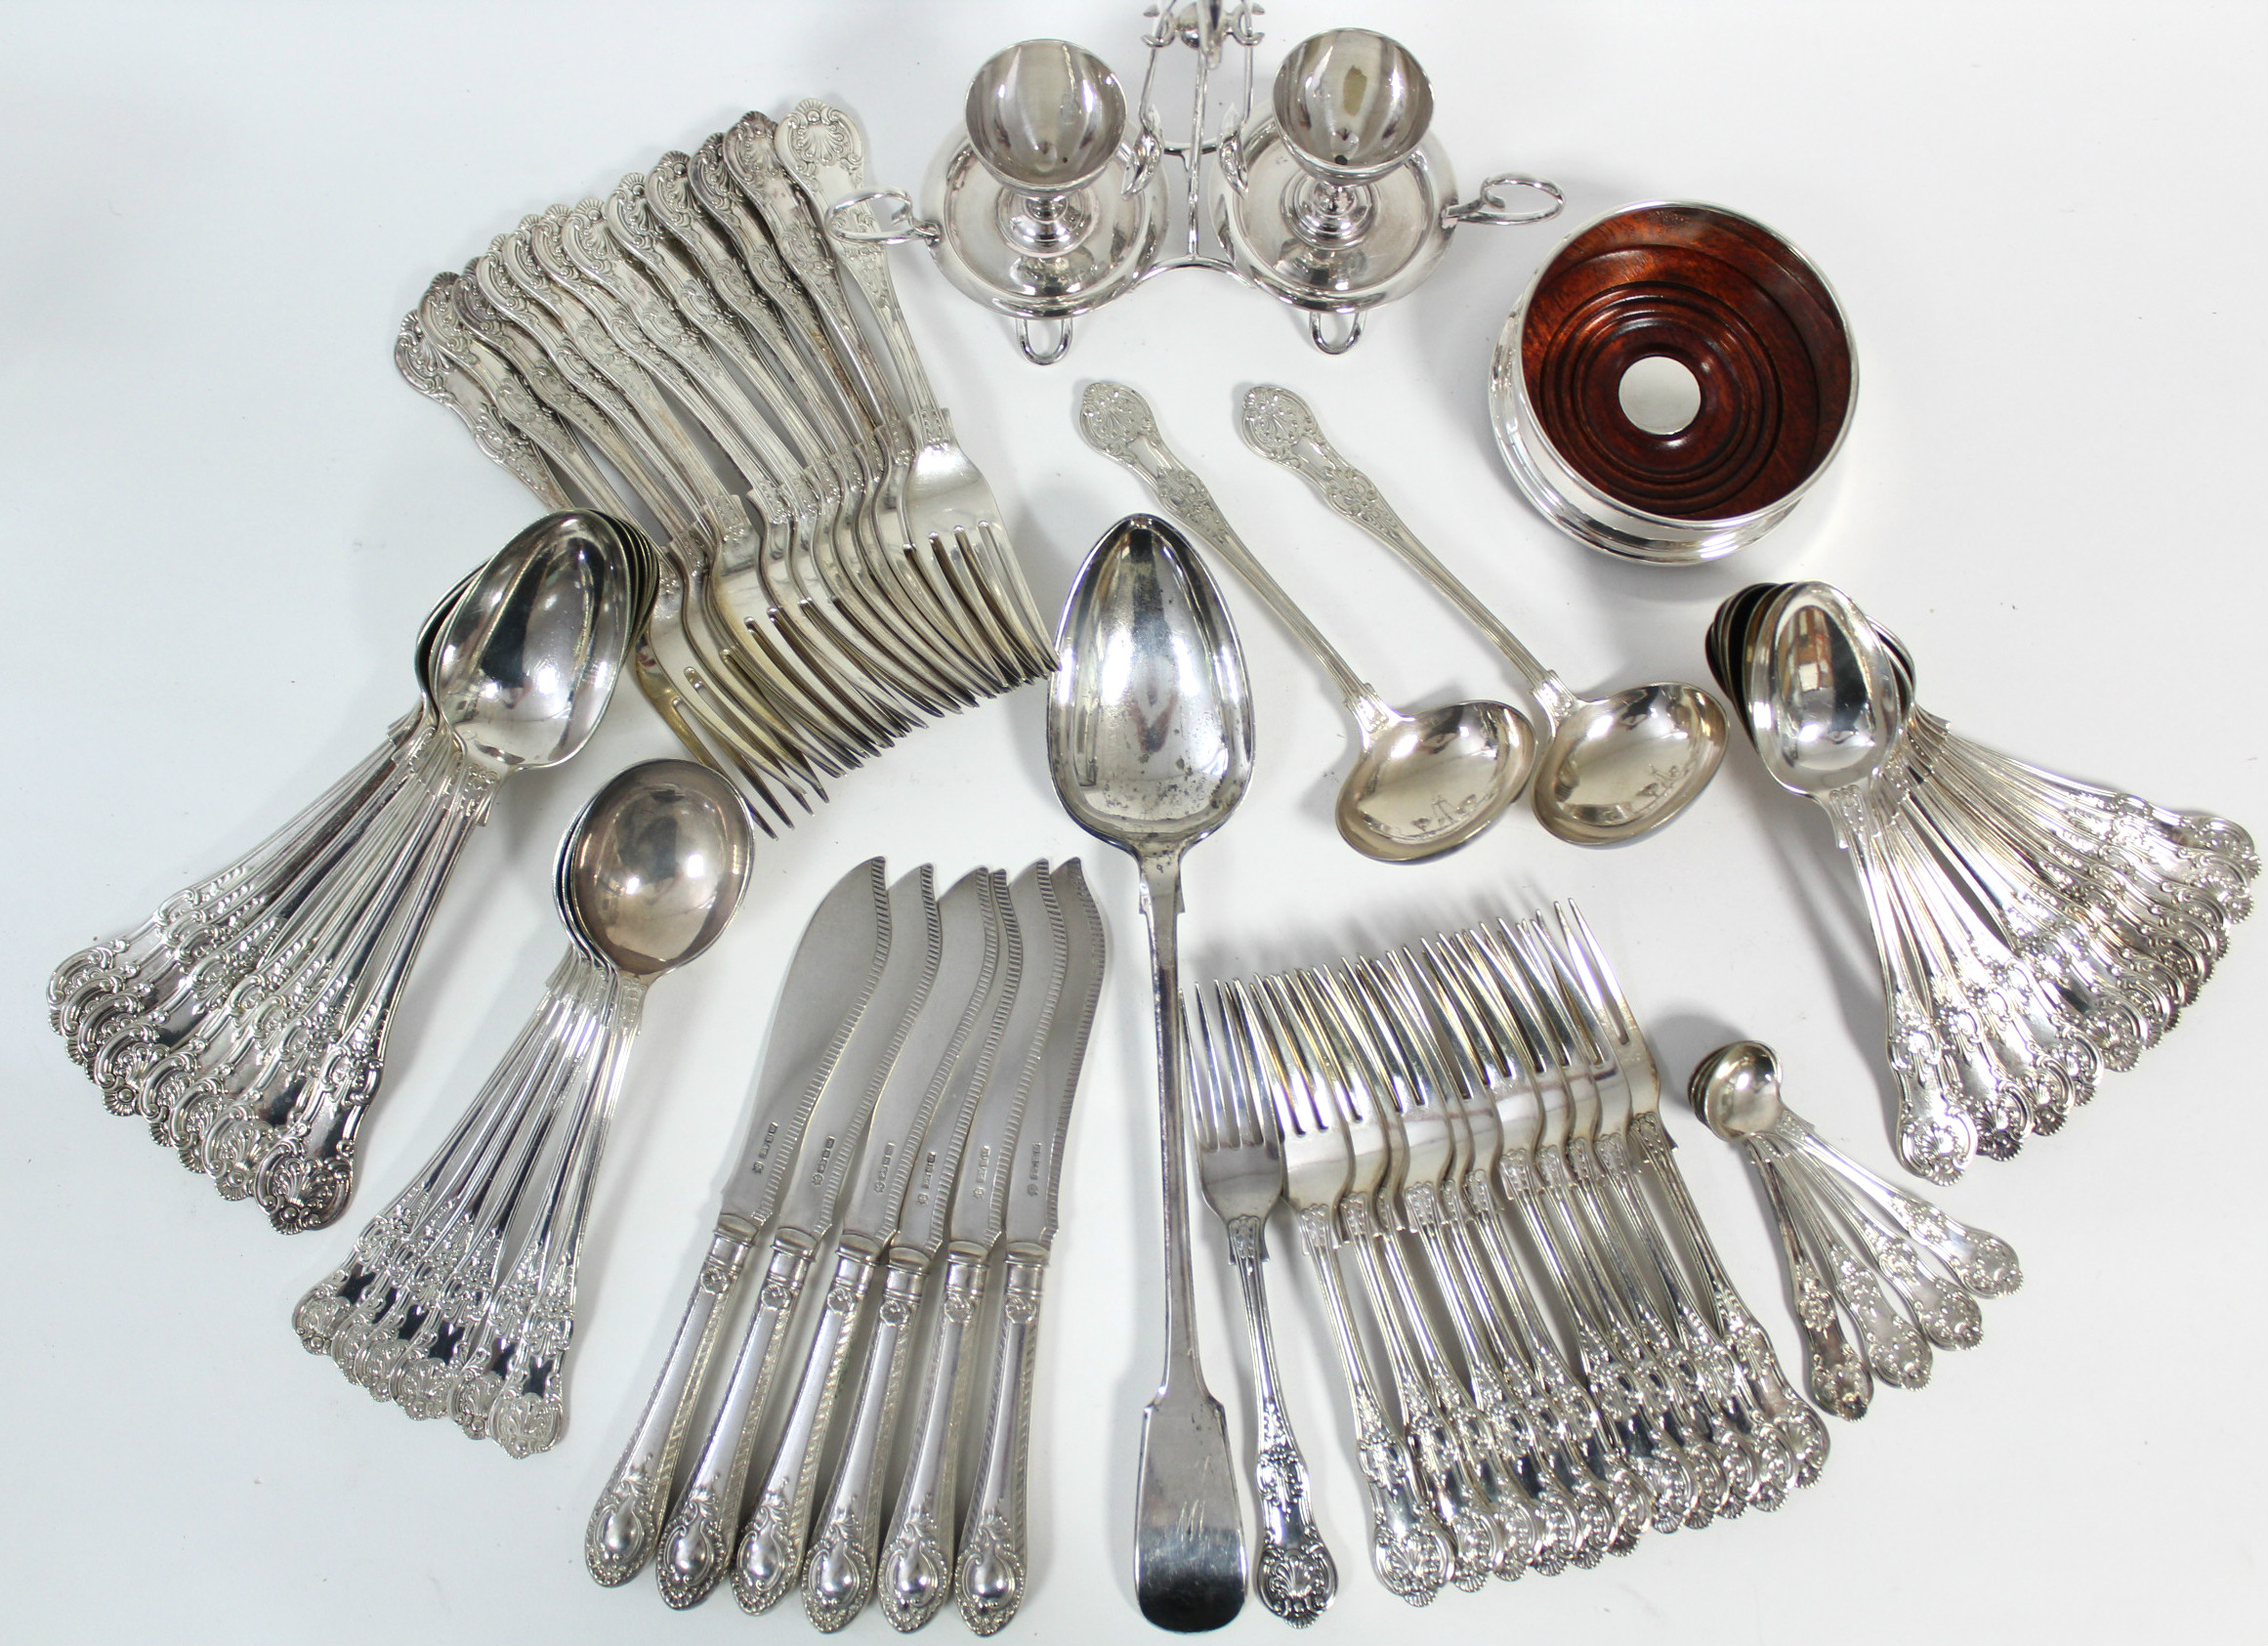 A part service of Queen's pattern flatware, comprising: eight table spoons, twelve table forks, - Image 2 of 4